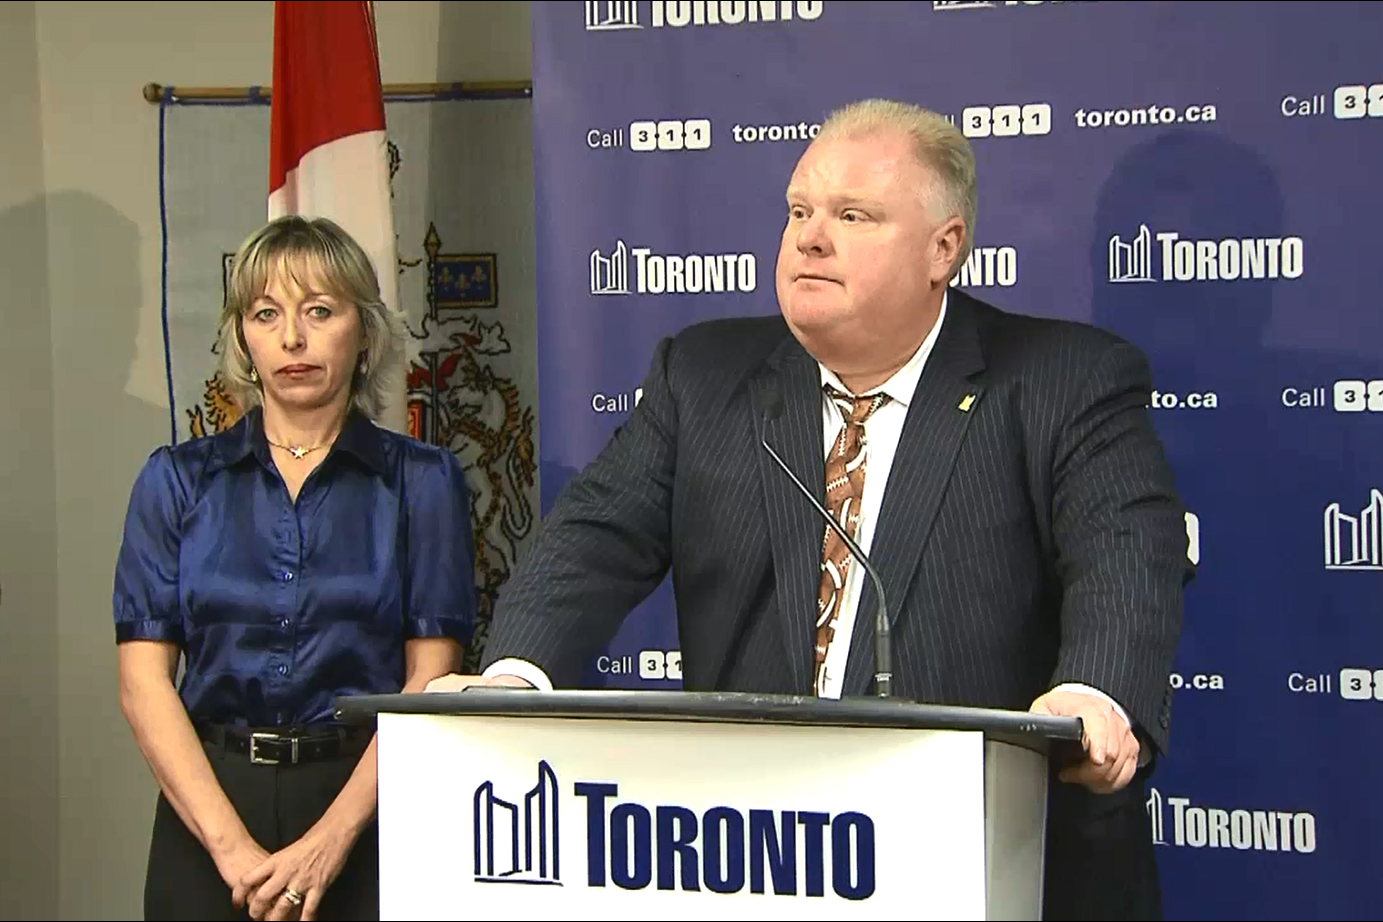 Mayor Rob Ford talks to reporters at city hall in Toronto on Nov. 14, 2013, as his wife Renata looks on. CITYNEWS.